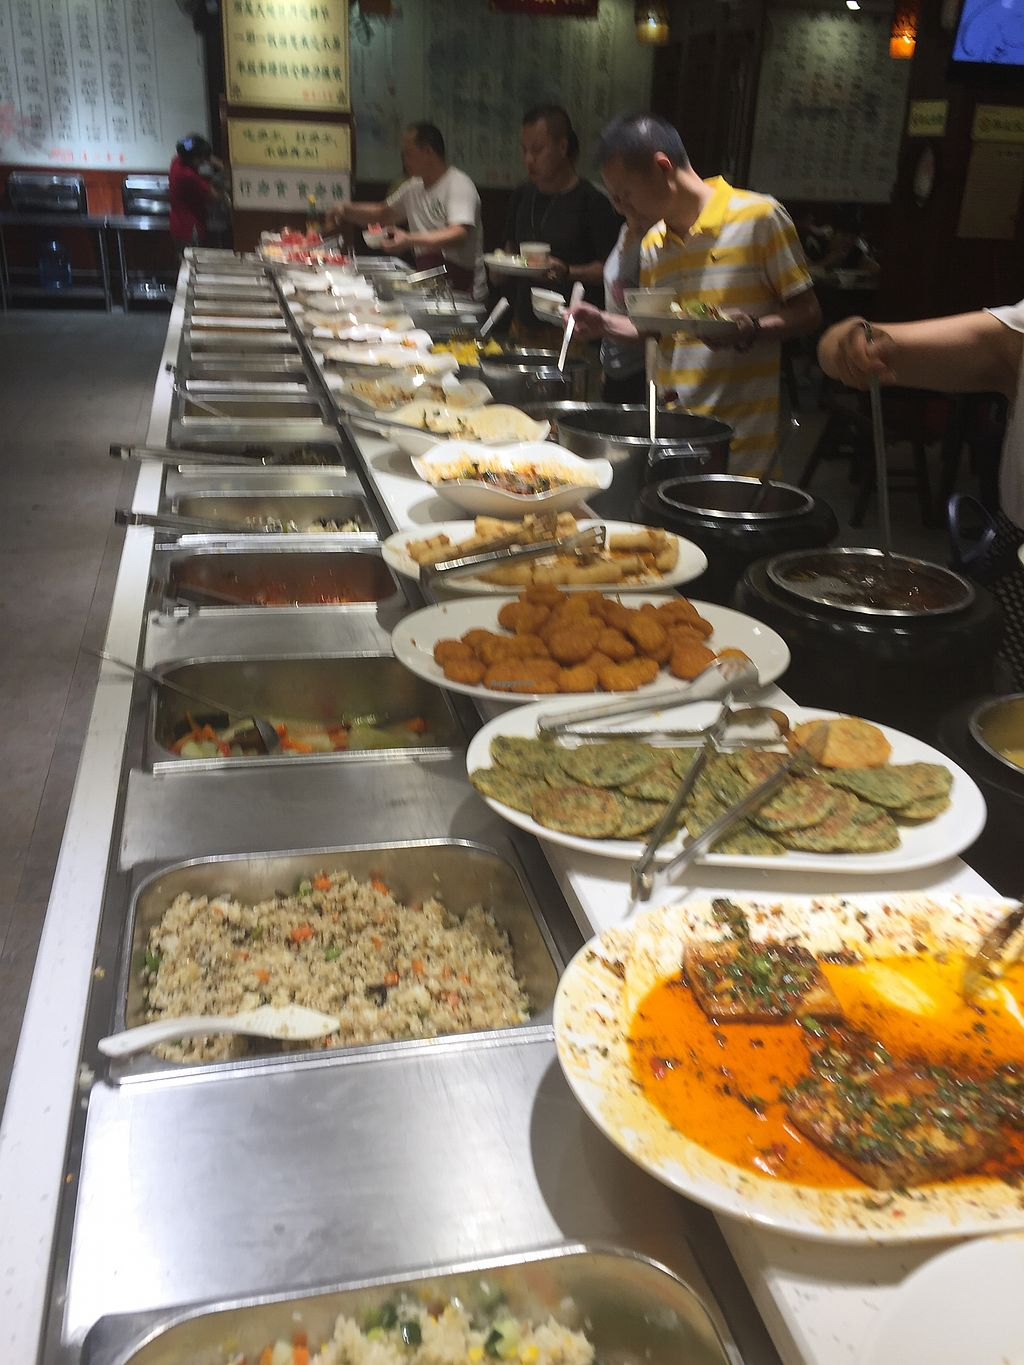 """Photo of Ju Shan Yuan Qing Xin  by <a href=""""/members/profile/H2OAddict"""">H2OAddict</a> <br/>Summer Buffet <br/> August 4, 2017  - <a href='/contact/abuse/image/91461/288586'>Report</a>"""